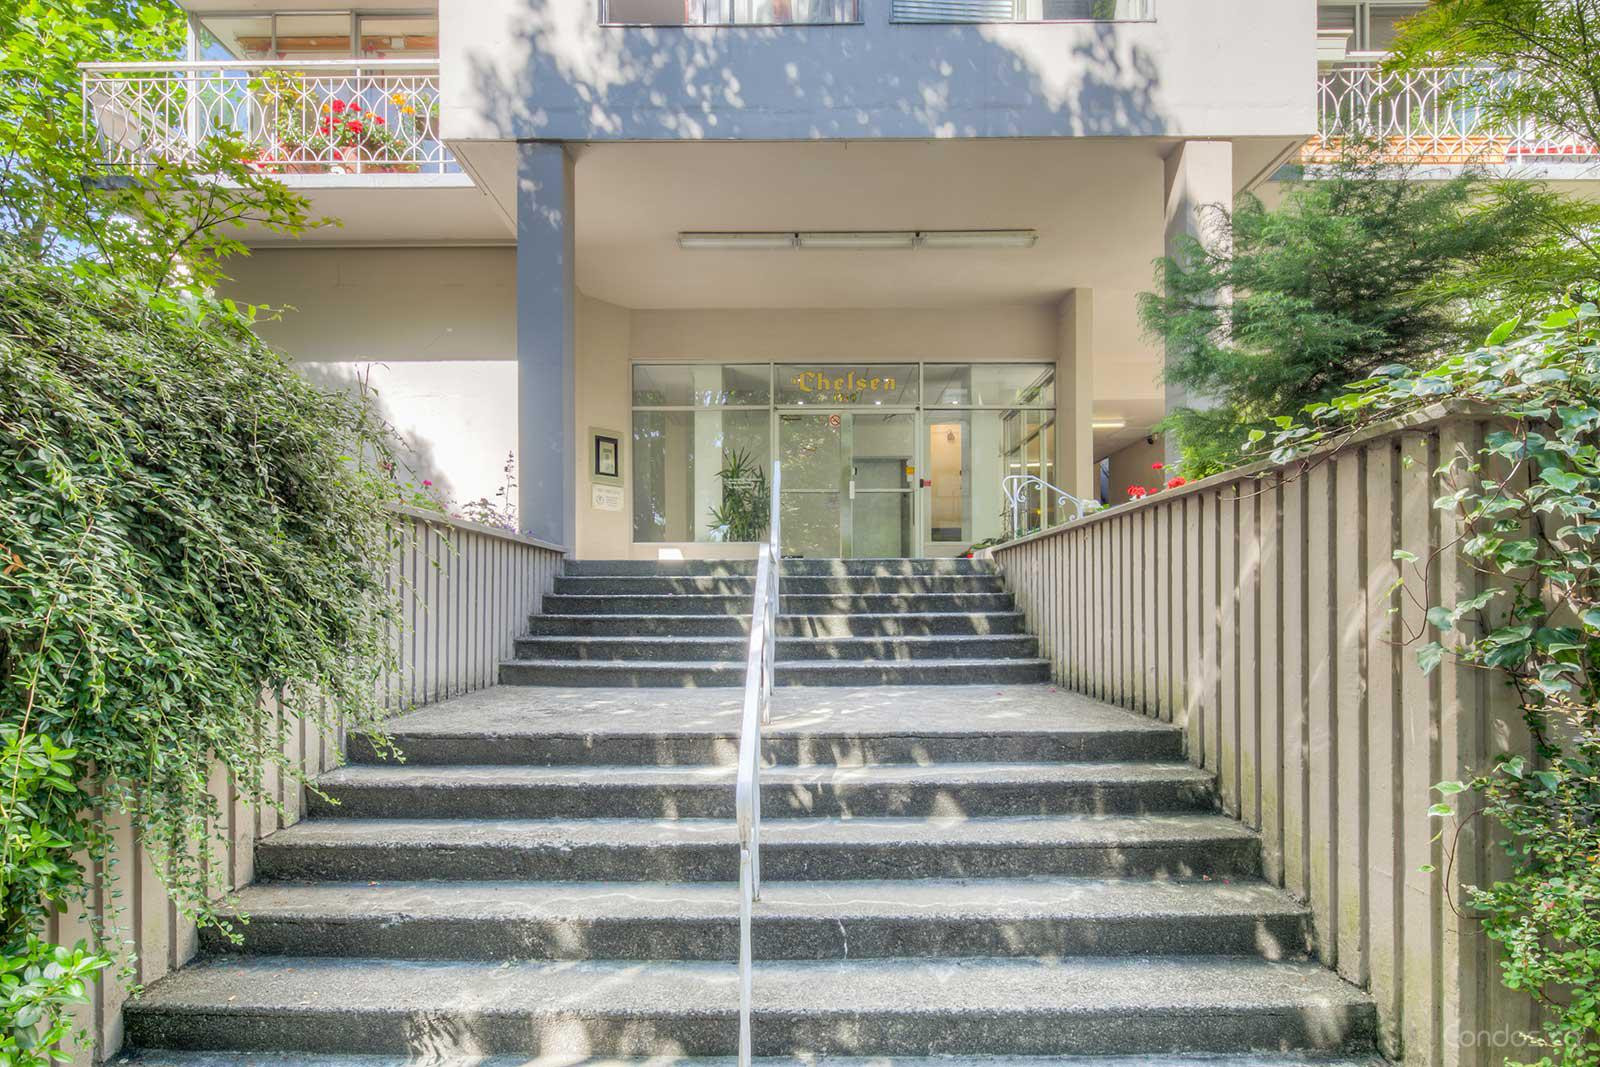 The Chelsea at 1219 Harwood St, Vancouver 1